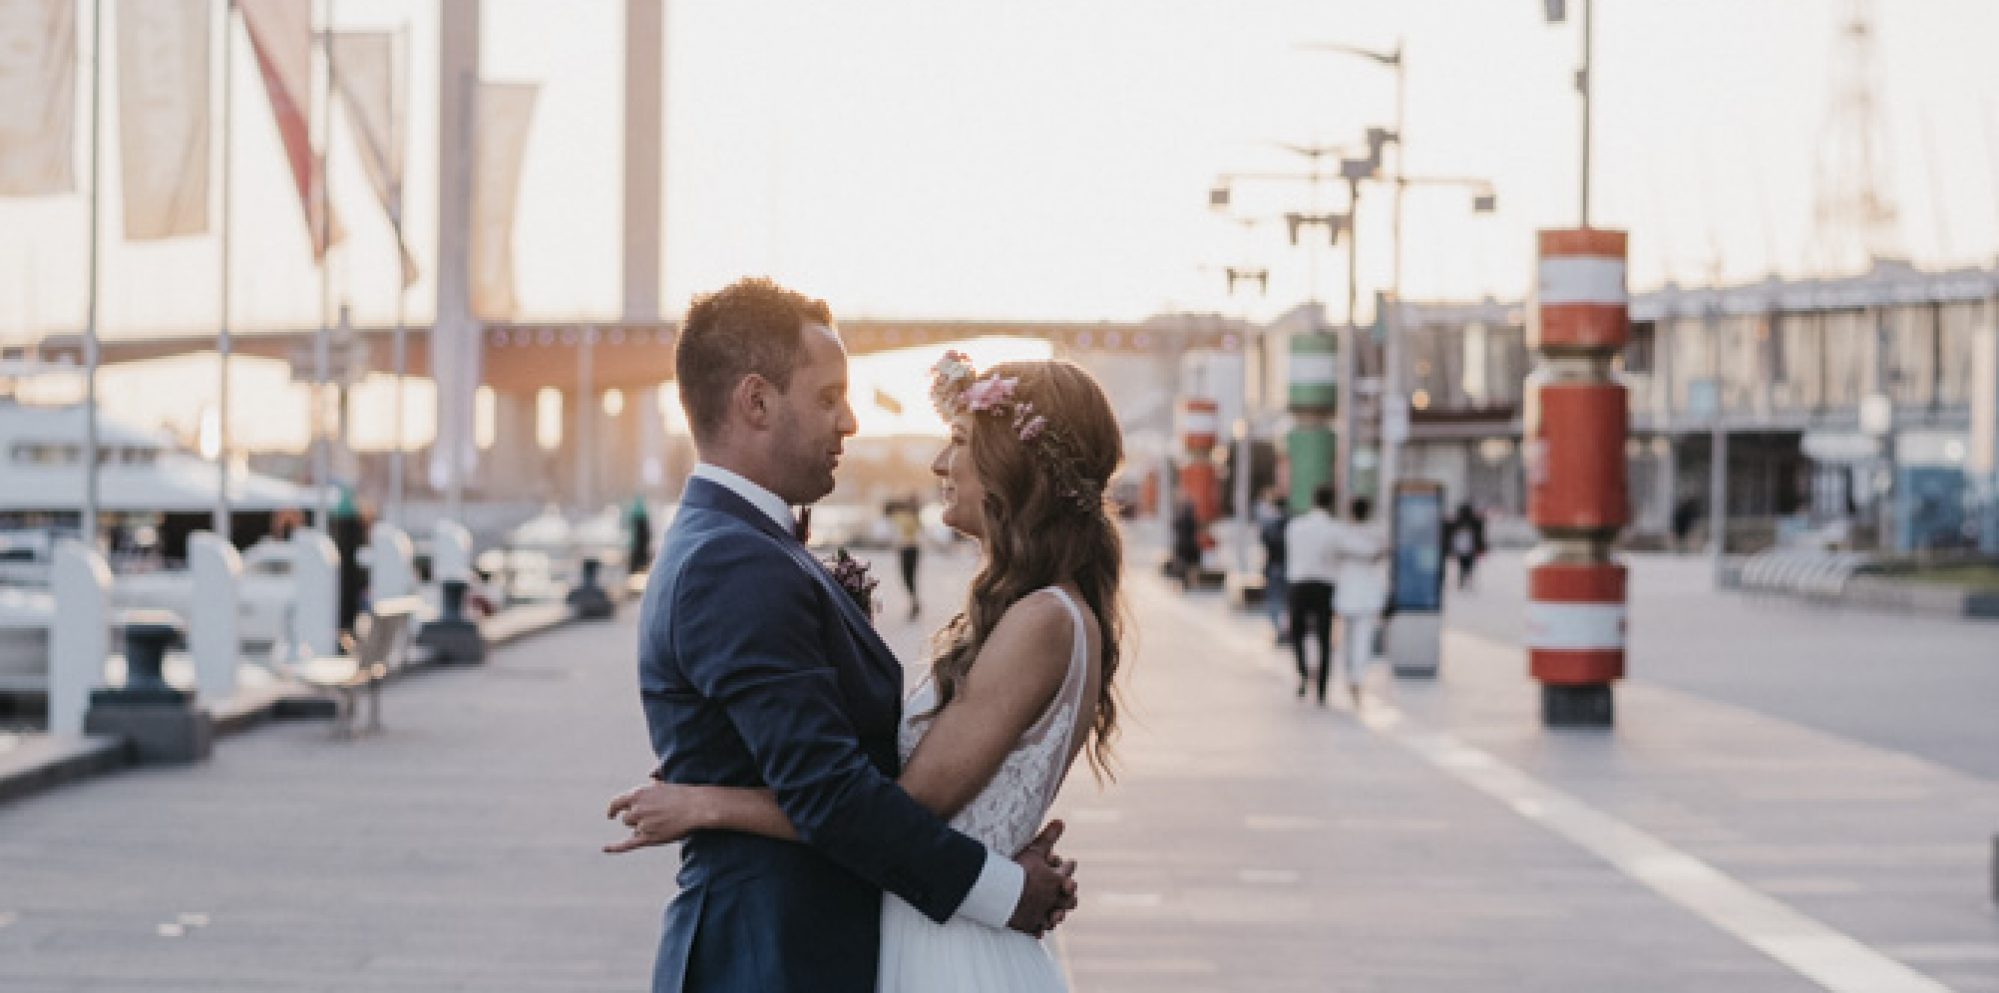 All smiles melbourne waterfront wedding photography melbourne